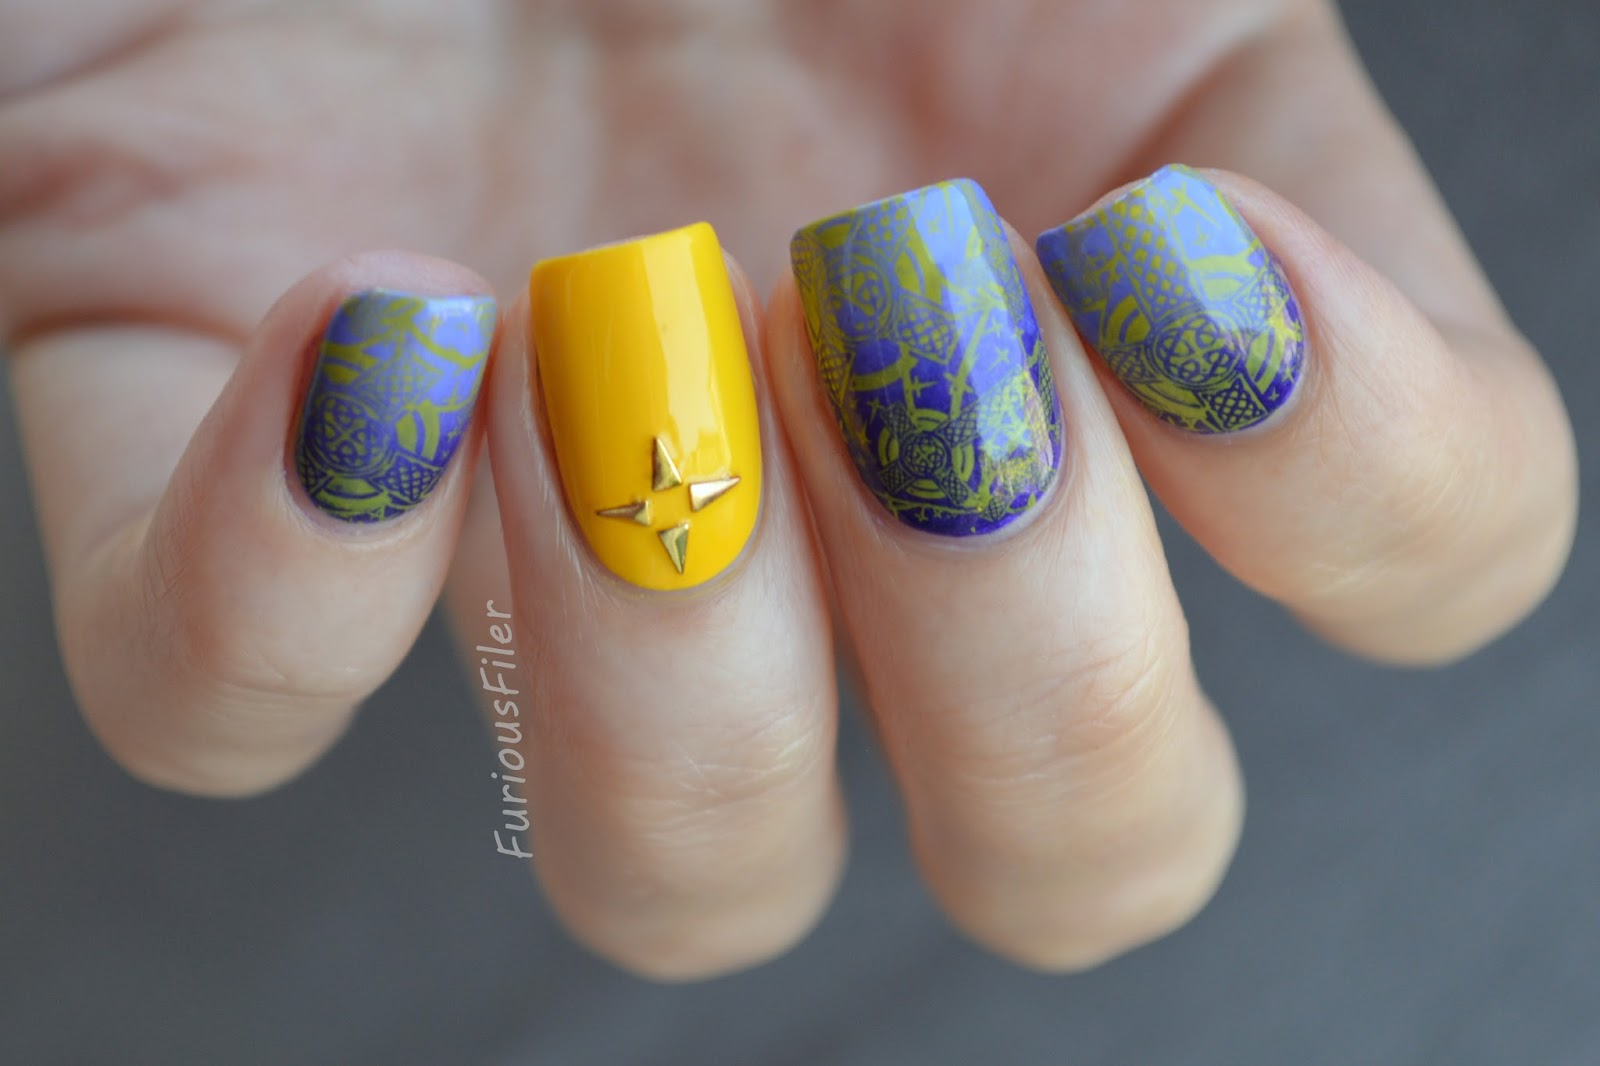 31 Day Challenge Inspired By Supernatural Moyou Nails Review